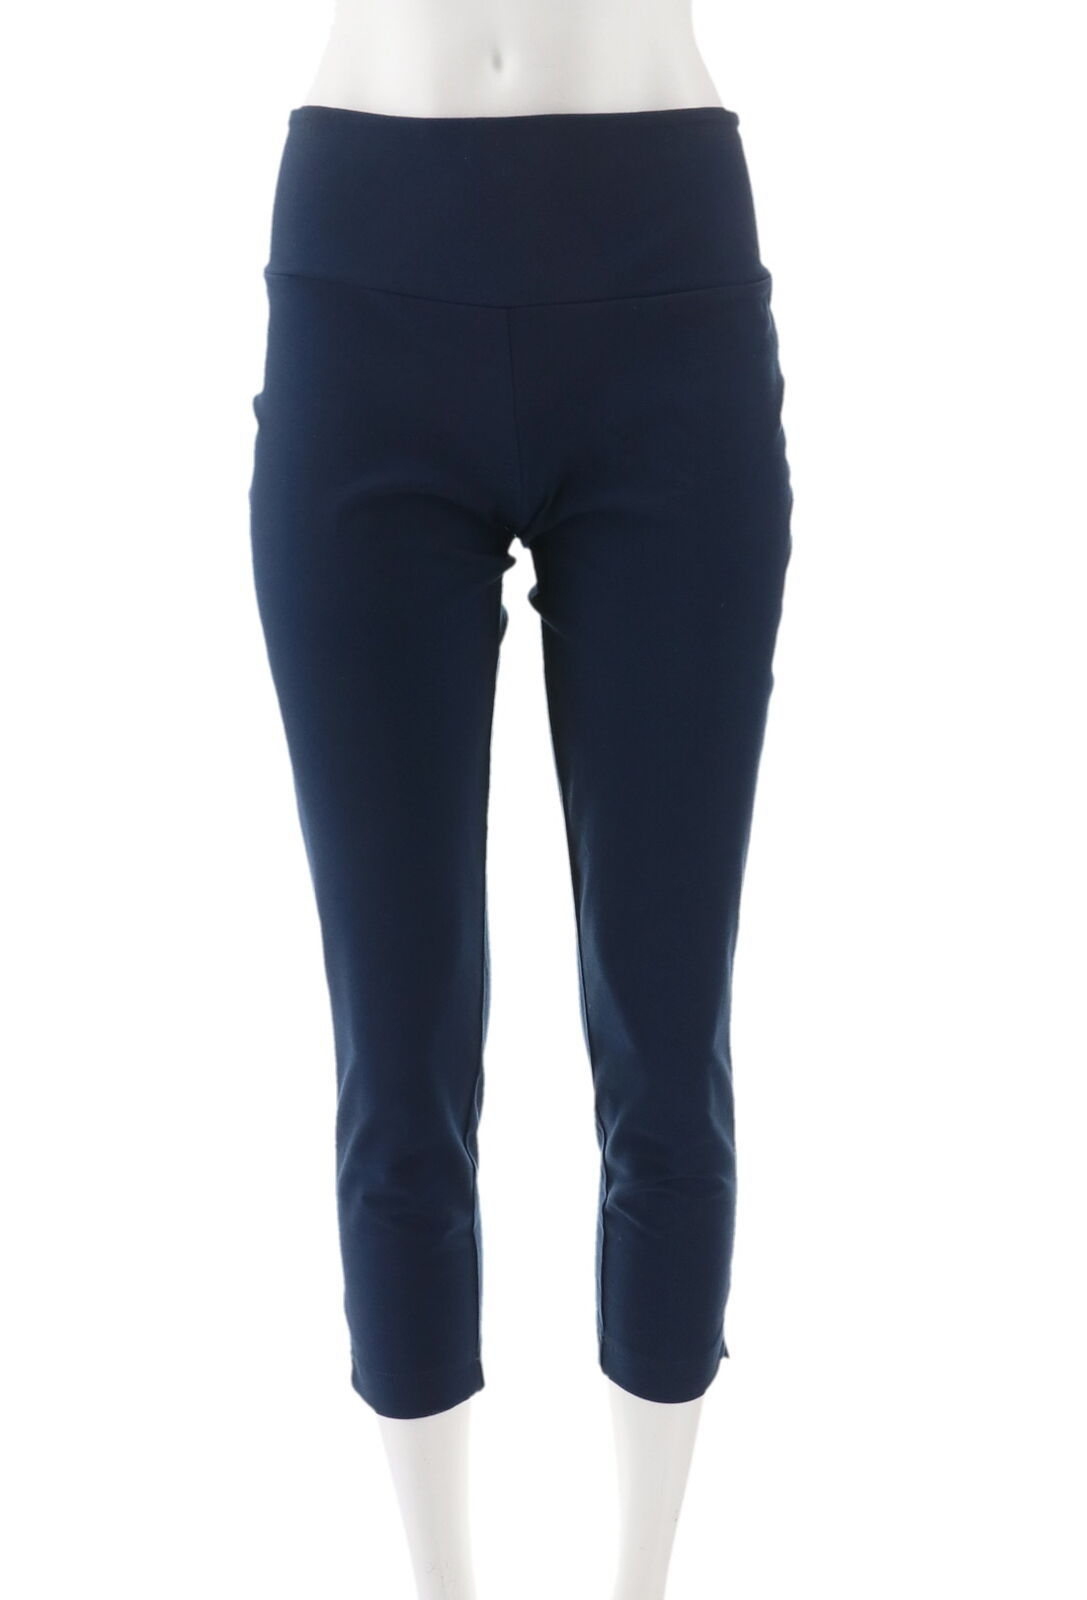 Wicked Women Control Crop Pants Alabaster 1X NEW A307763